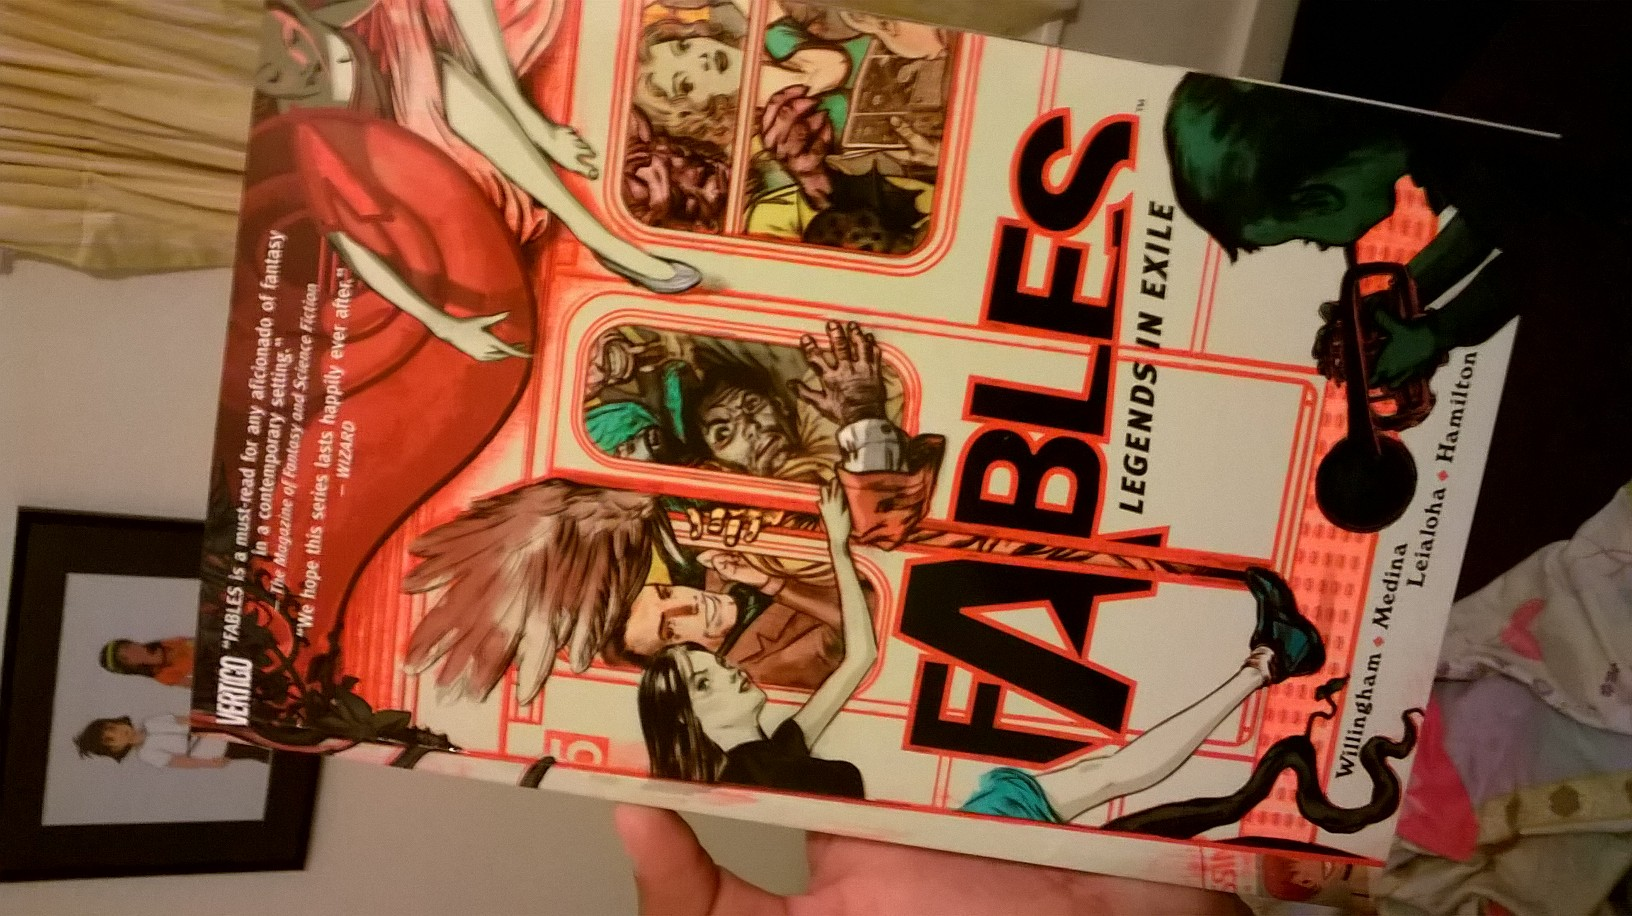 Fables Volume 1 Graphic Novel